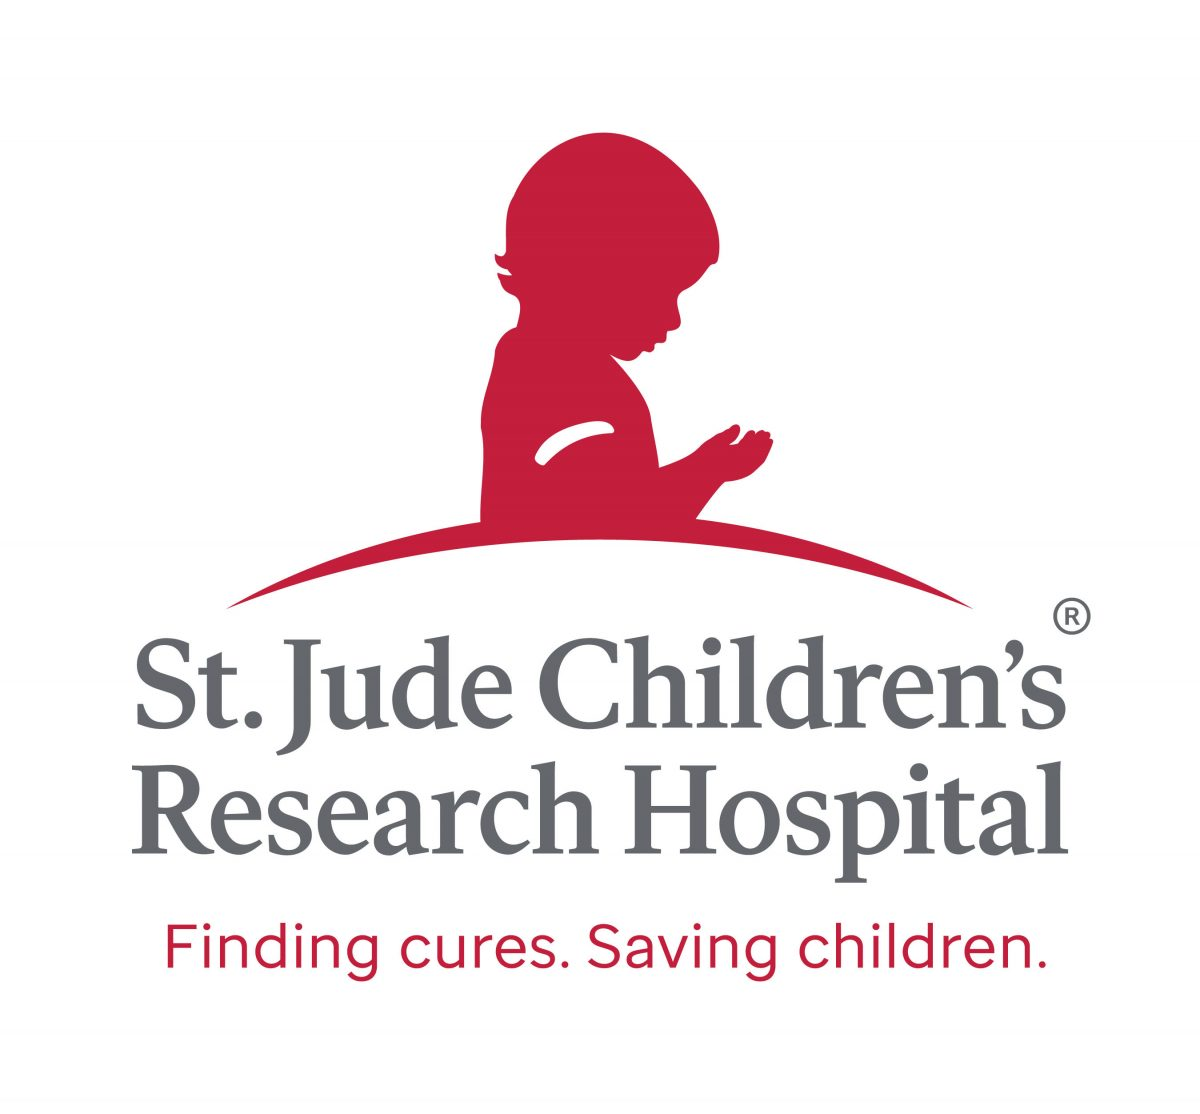 Music superstars to «take the stage» during virtual festival for St. Jude Children's Research Hospital